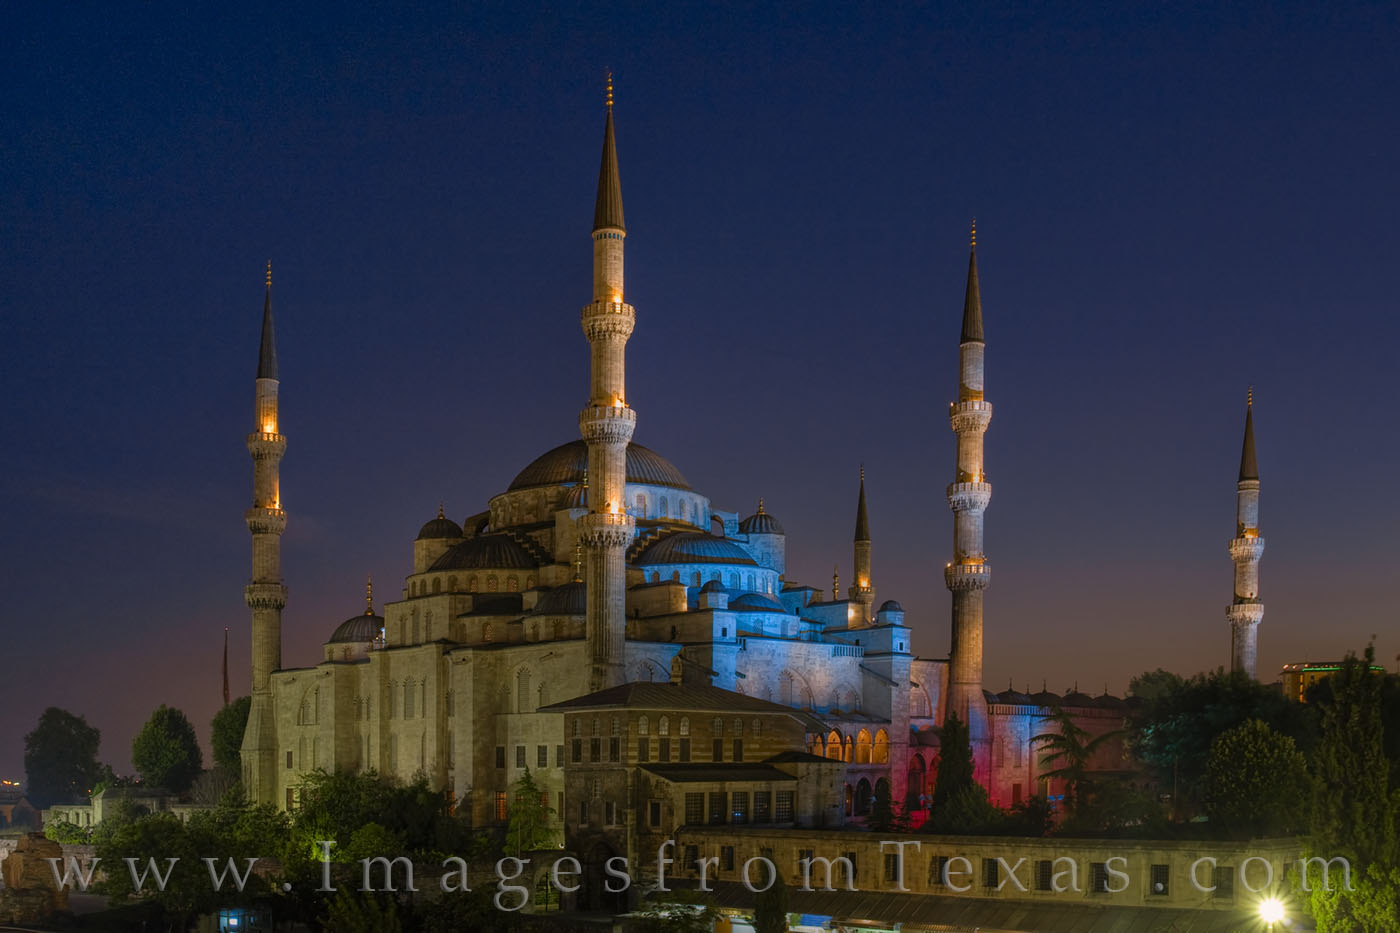 blue mosque, Sultan Ahmed Mosque, istanbul, turkey, black sea, evening, night, domes, minarets, photo